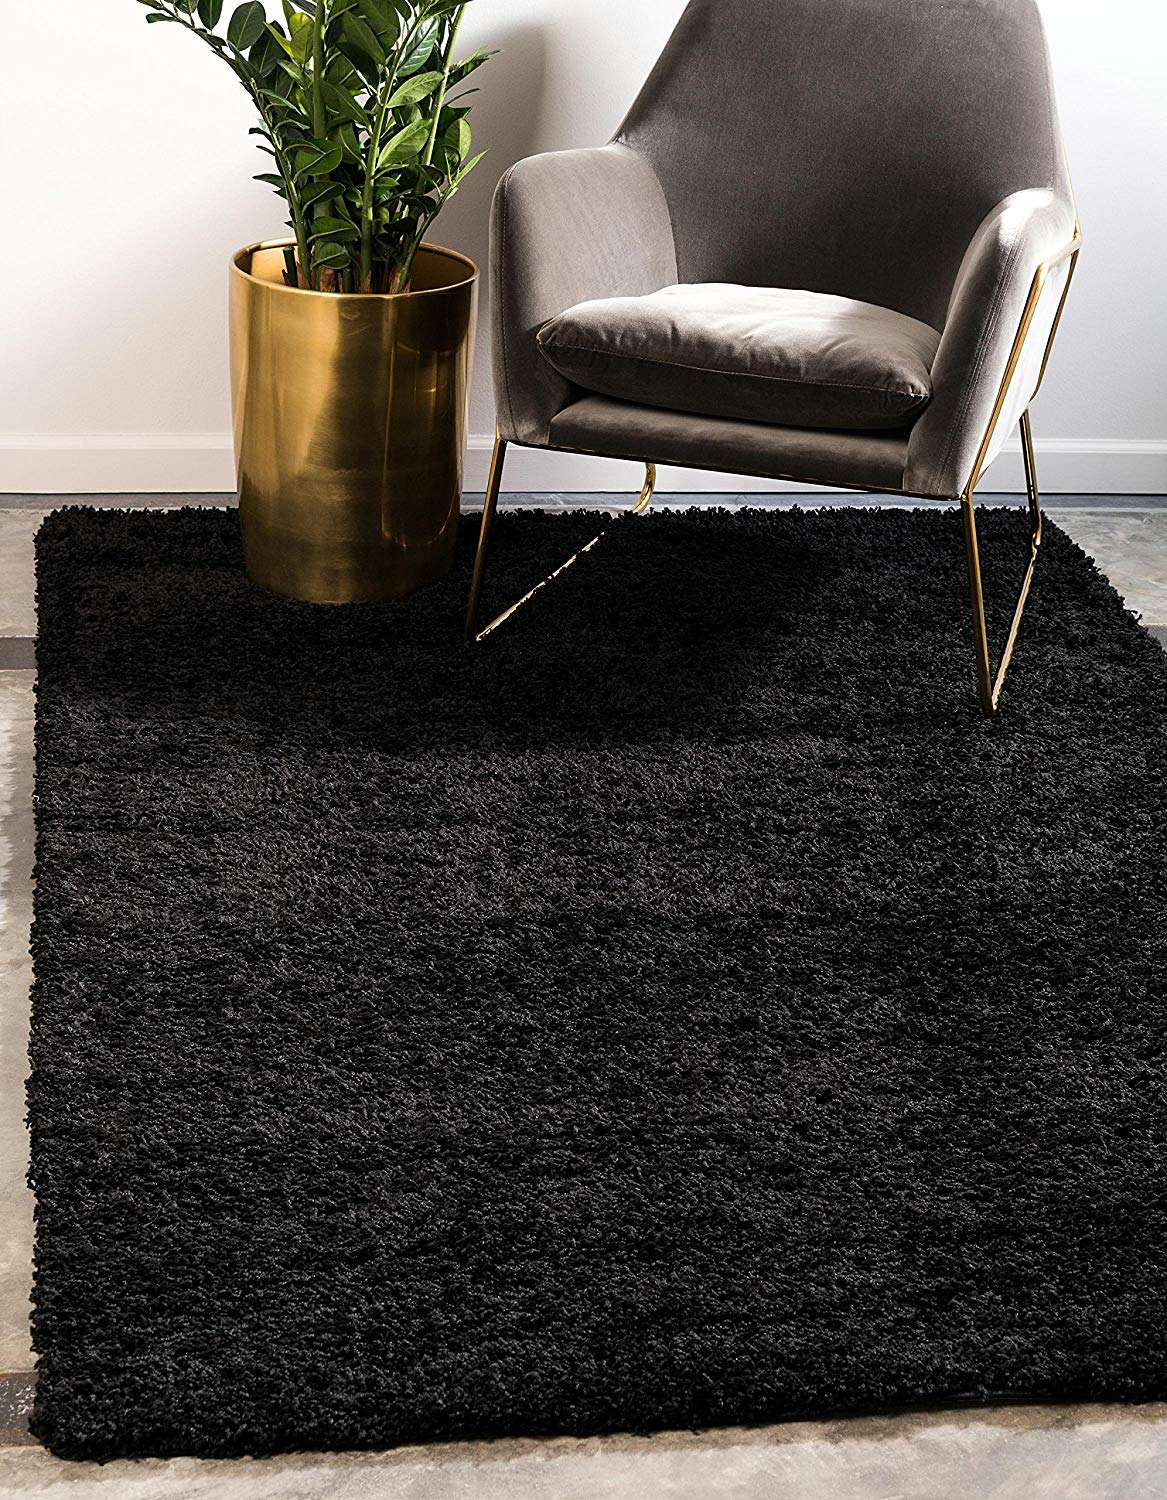 Unique Loom Solo Solid Shag Collection Modern Plush Jet Black Area Rug (8' 0 x 10' 0) - Living room